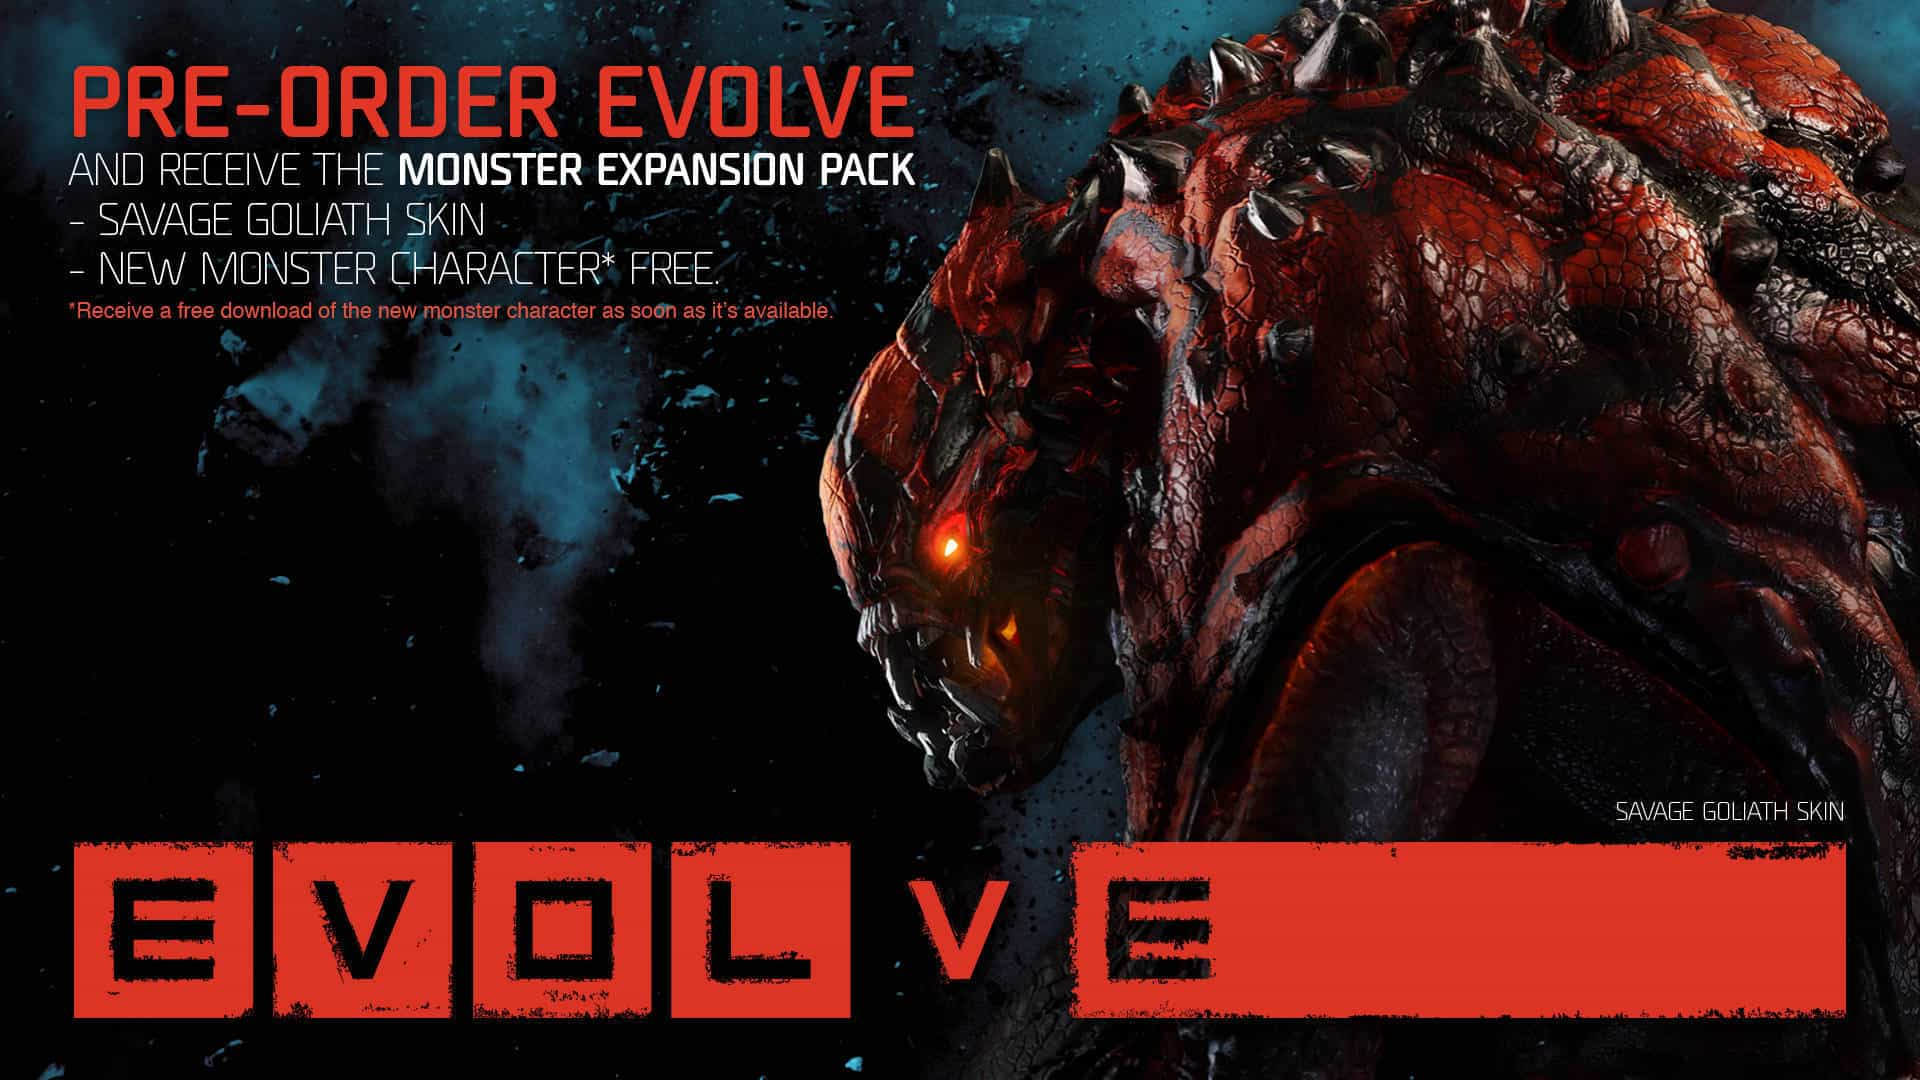 Evolve_1920x1080 - Ultimate Gaming Paradise